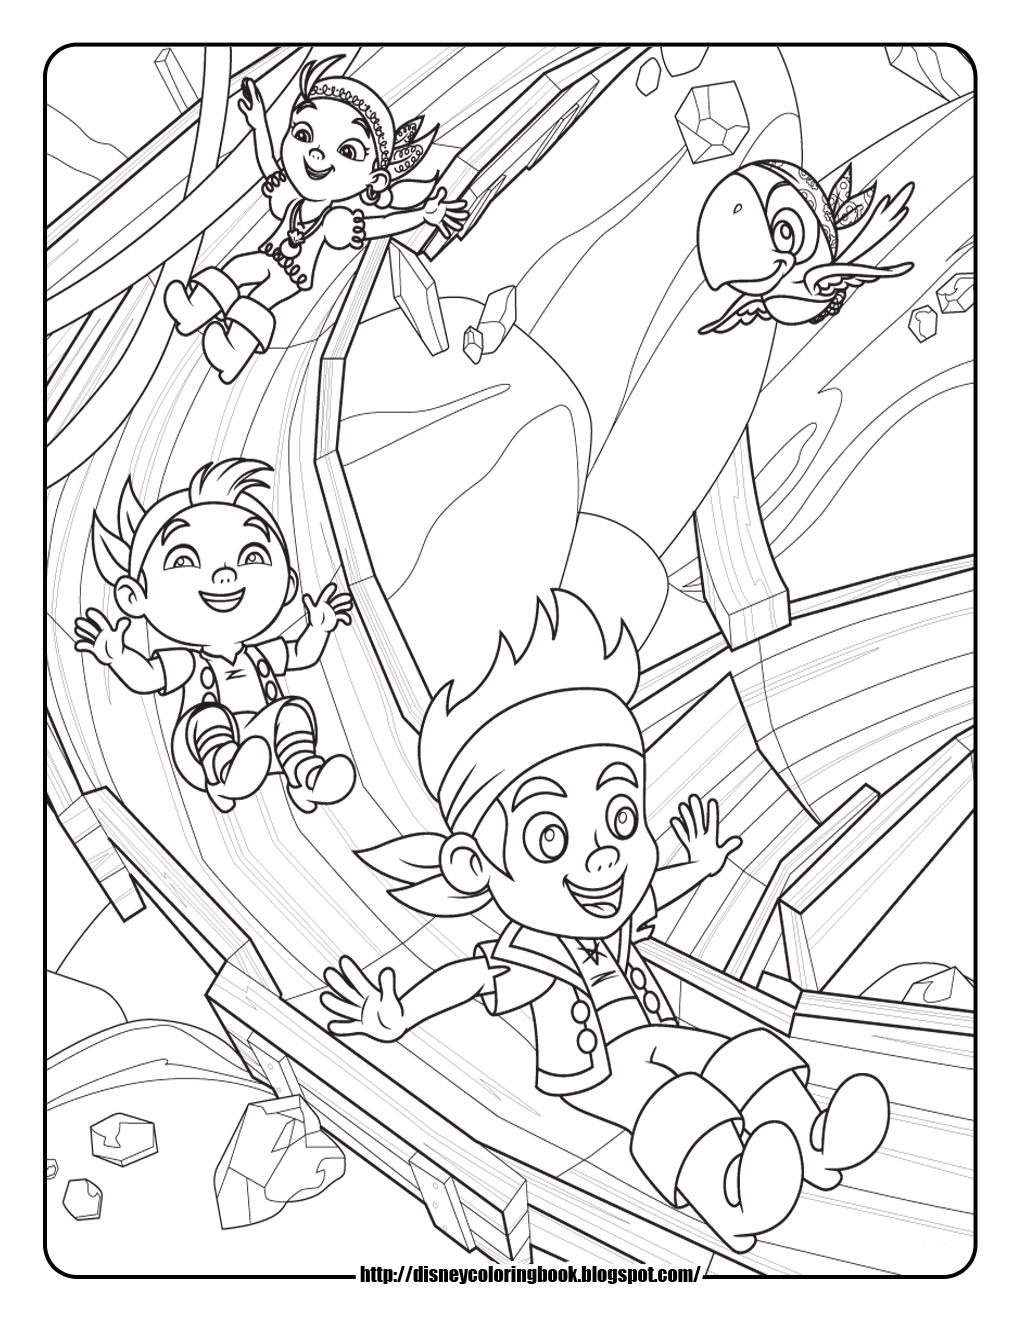 disney pirates coloring pages - photo#26